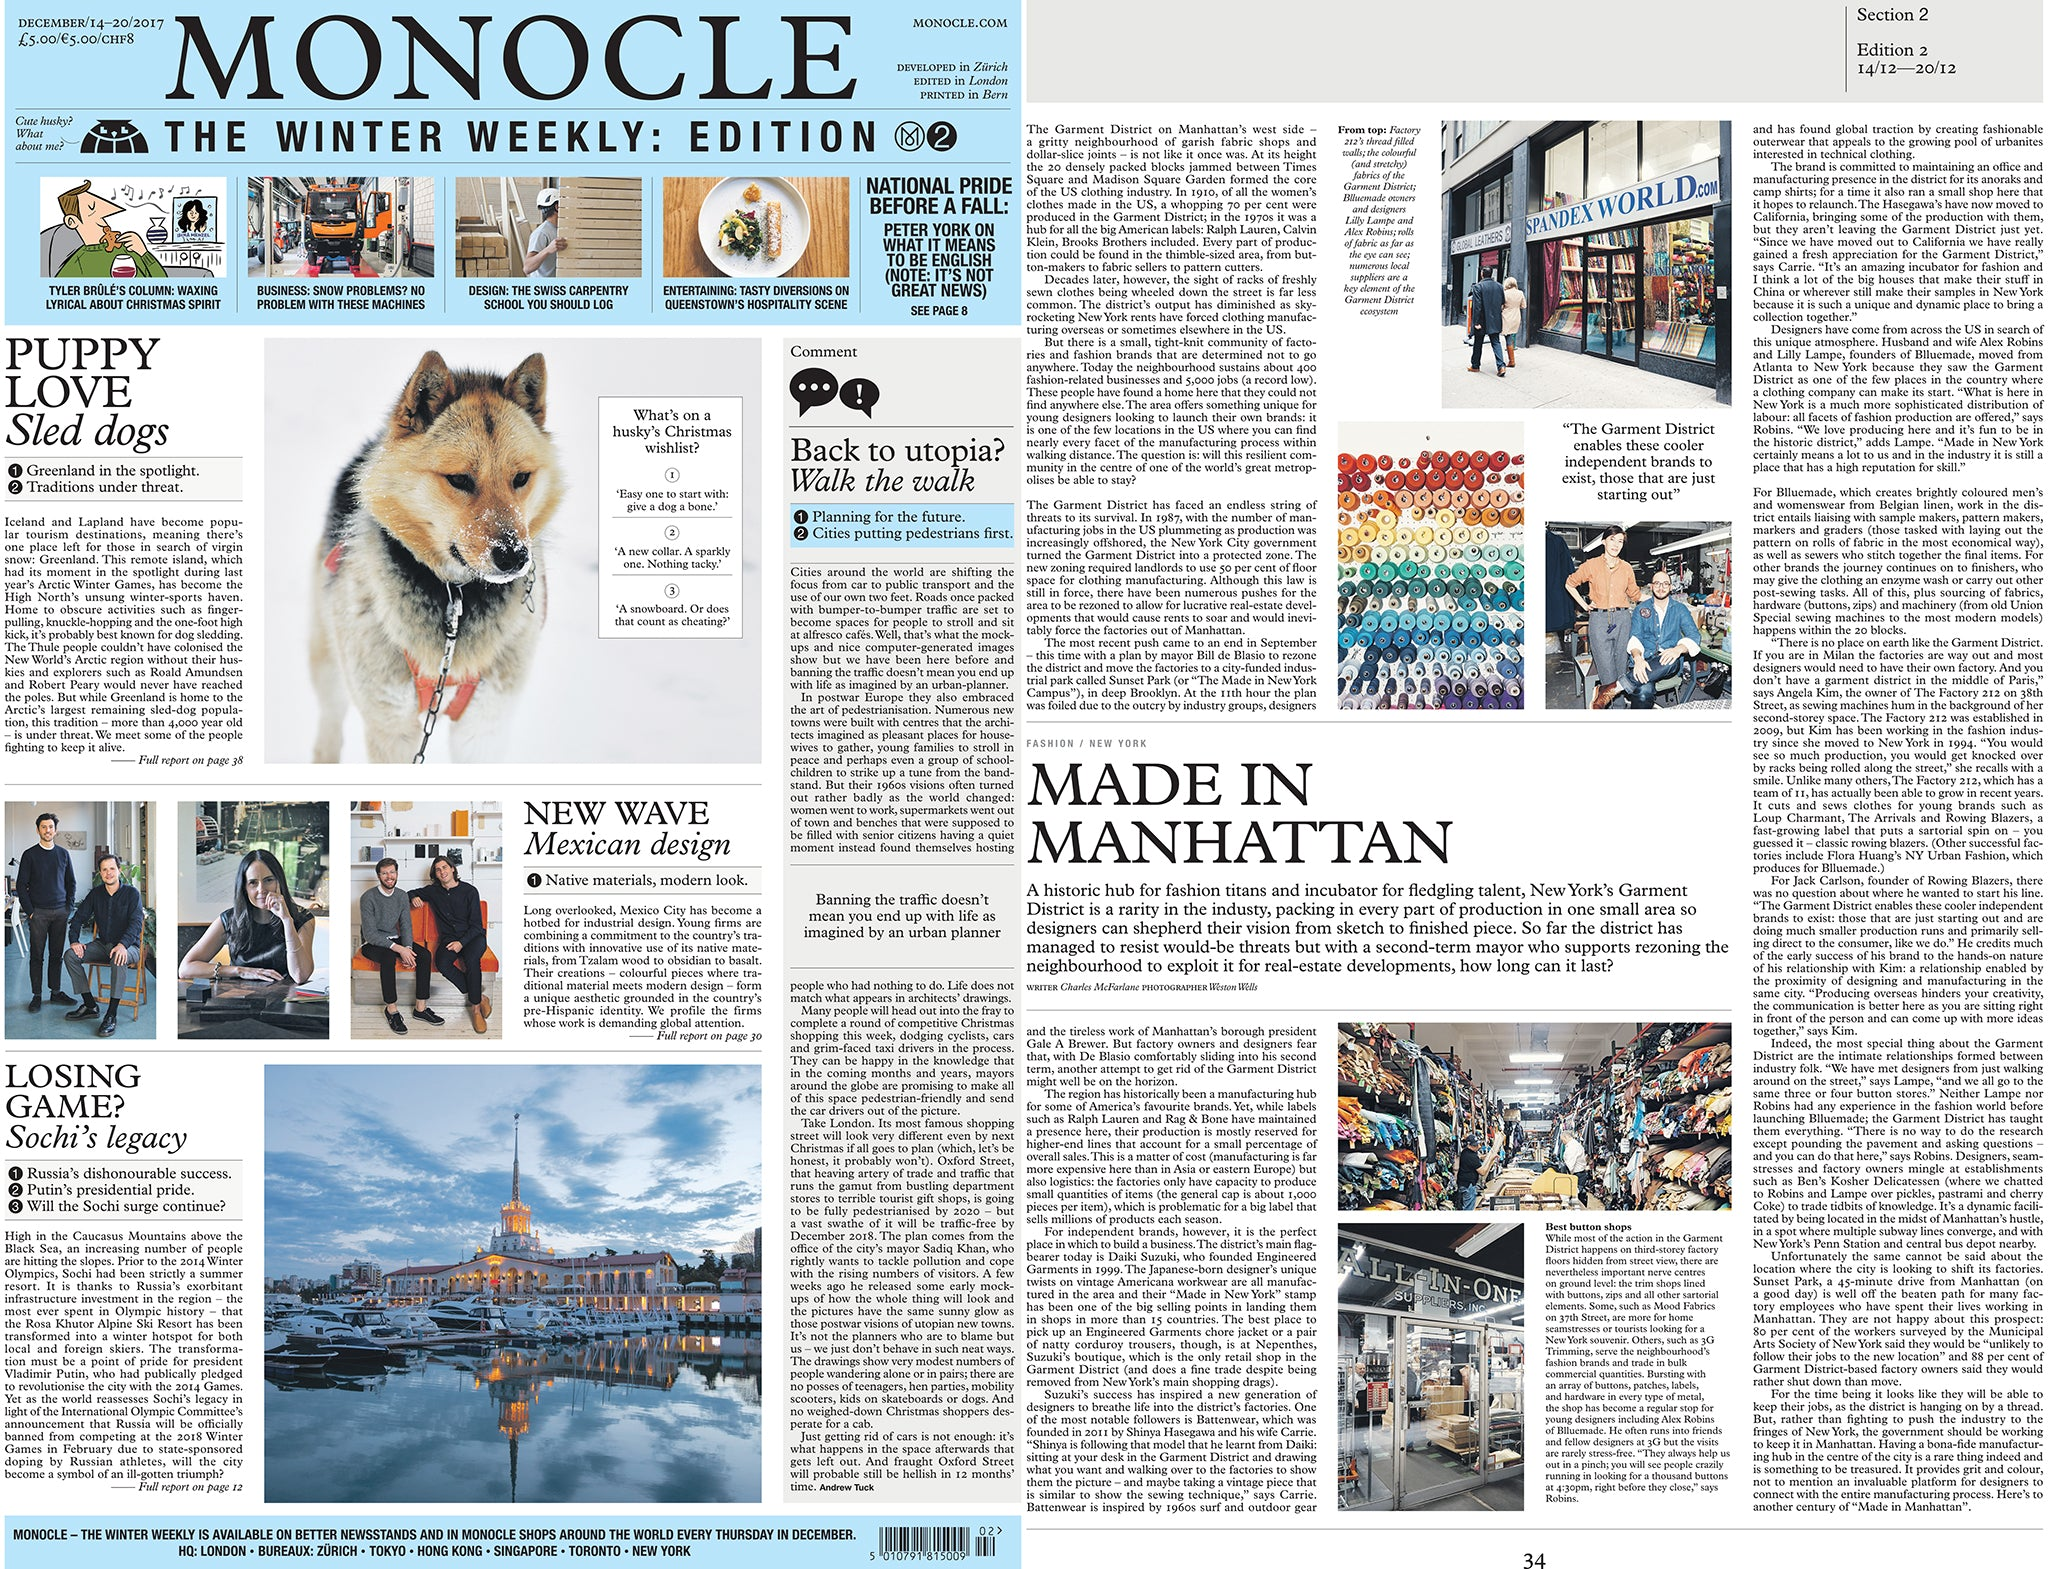 Monocle Made in Manhattan Blluemade article